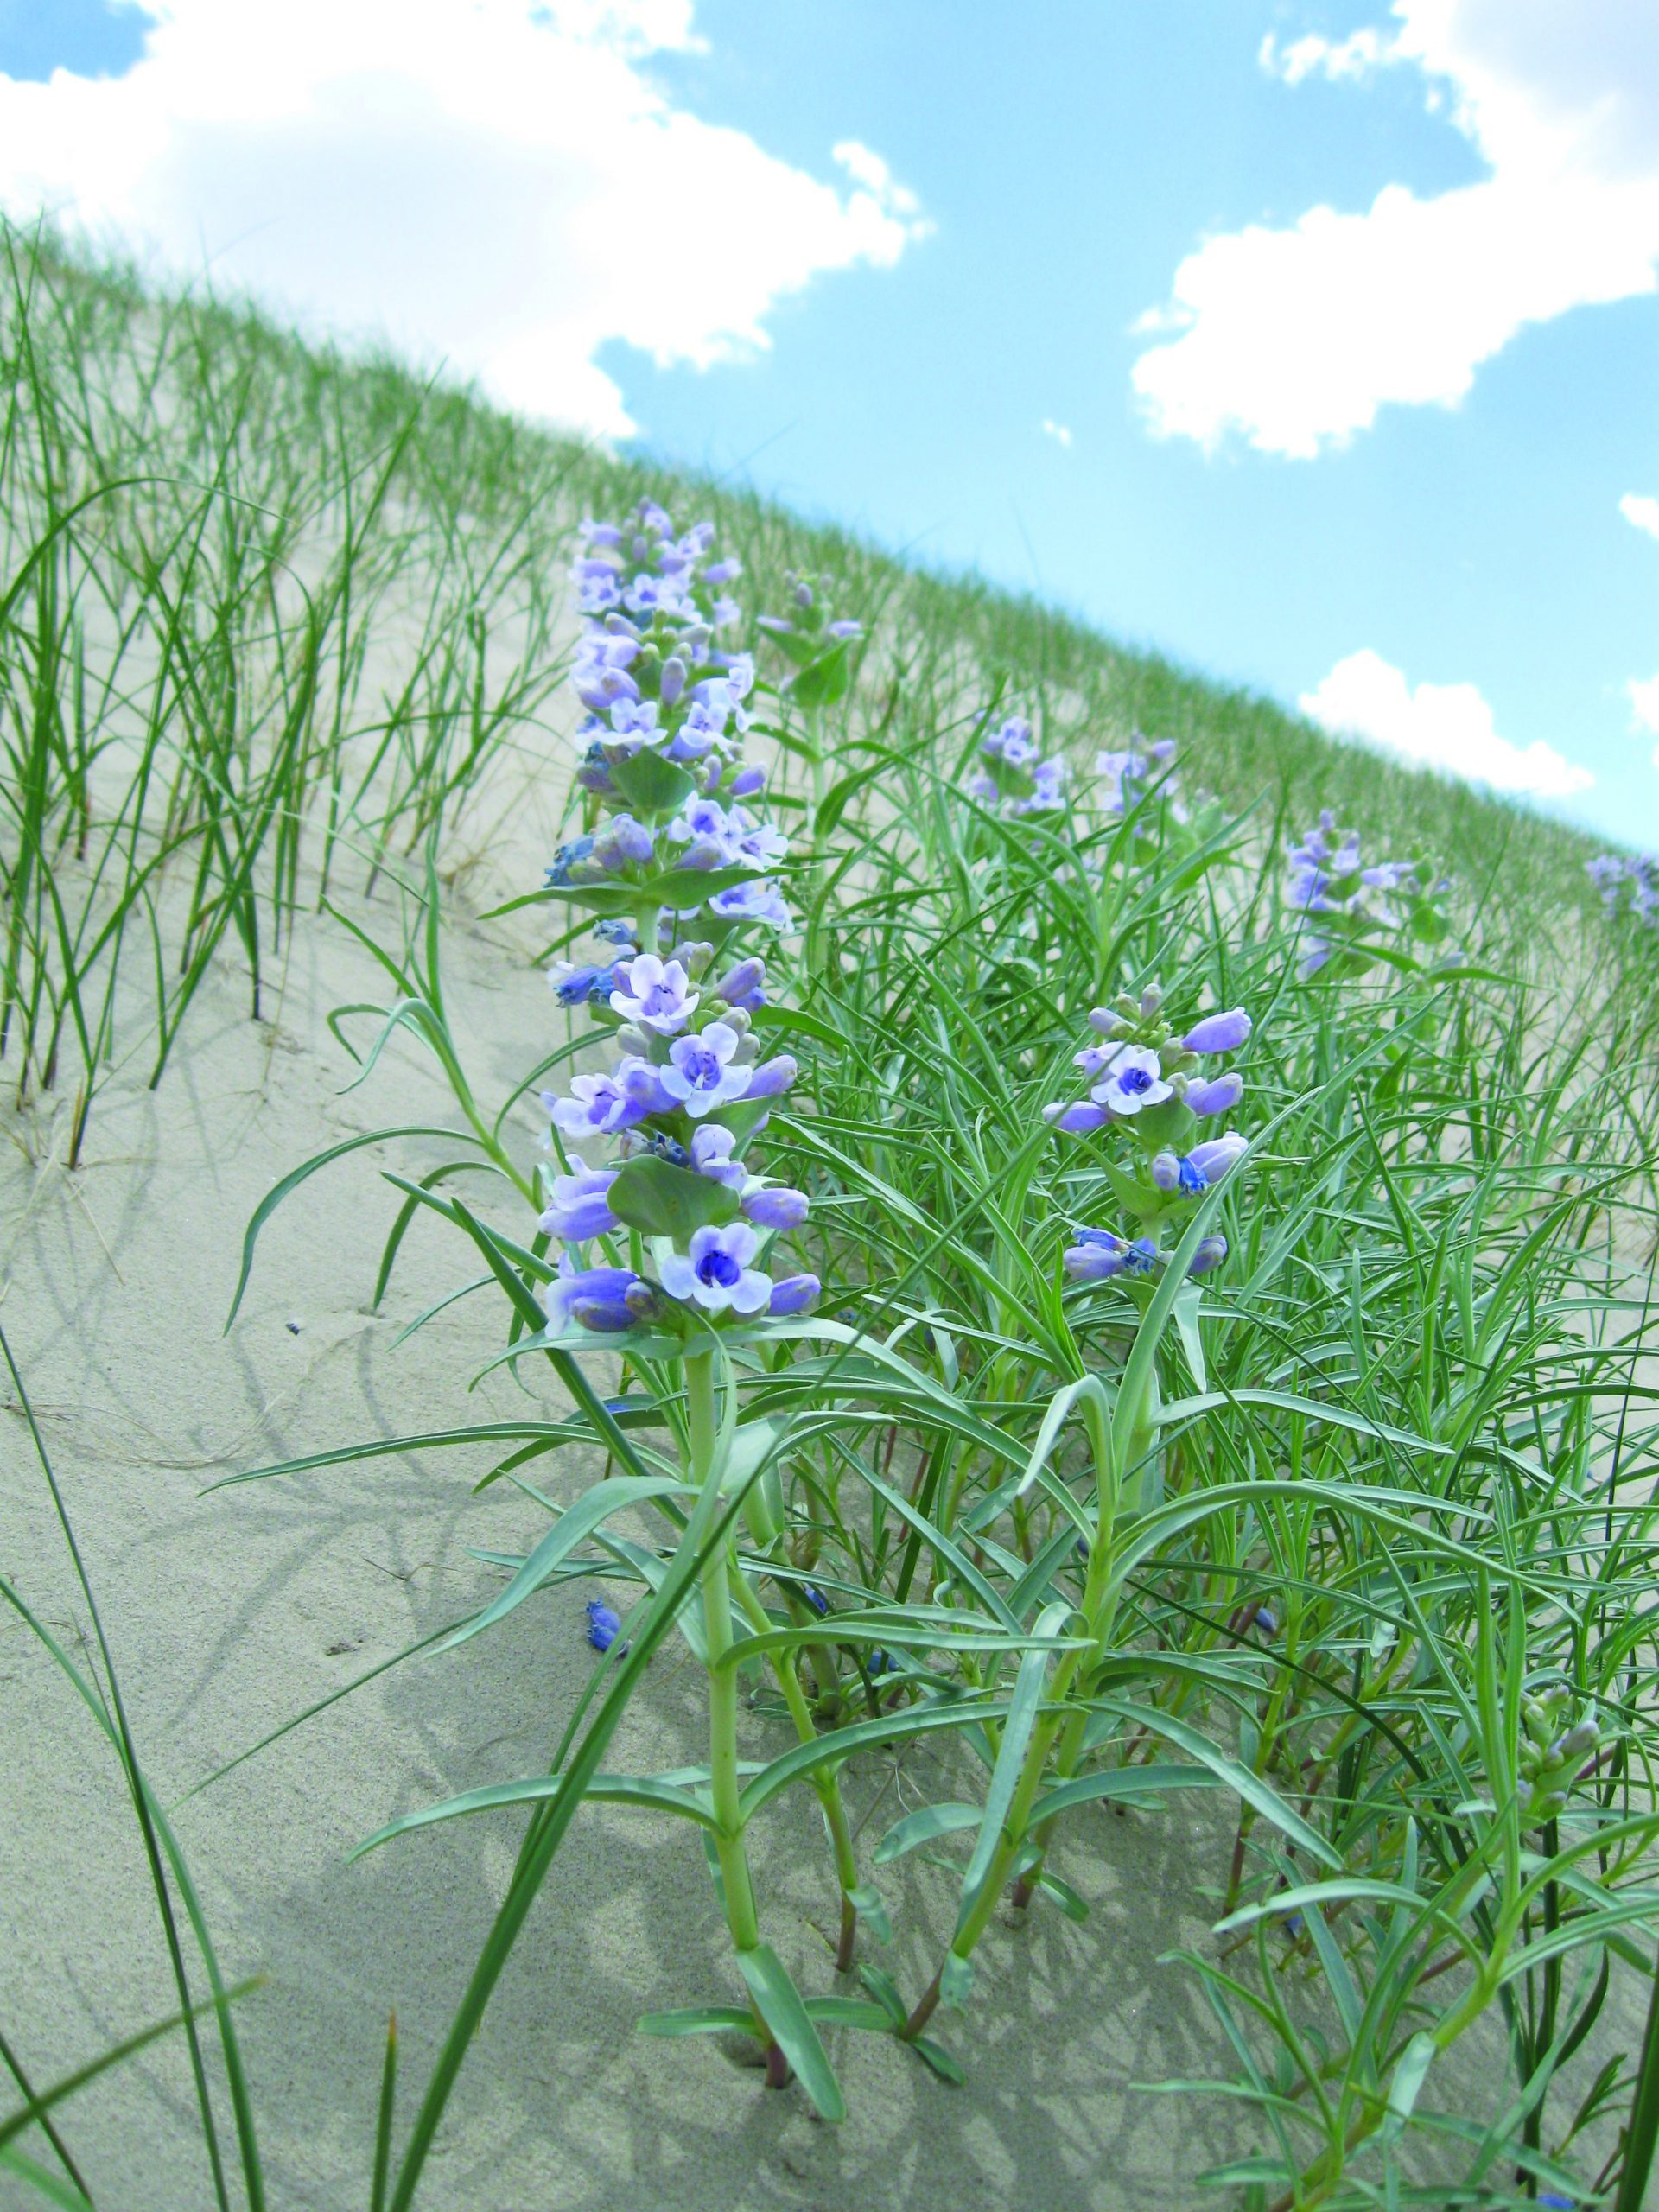 The blowout penstemon (Penstemon haydenii) is an early colonizer of open sand dune habitats (blowouts) and is threatened by the decline in the processes that create this habitat.